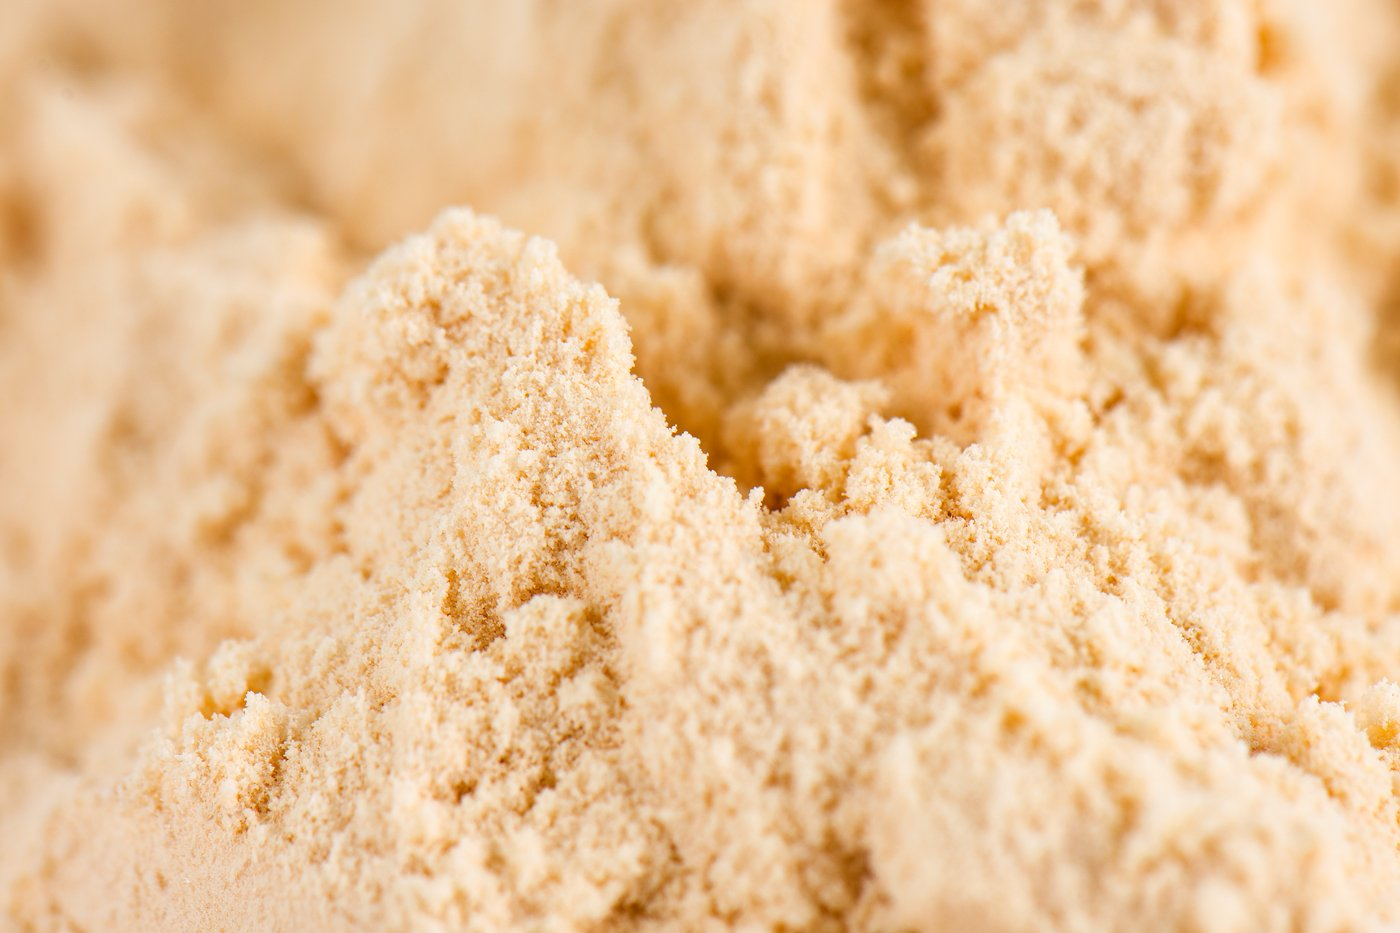 Optimal Protein Powder From Non-GMO Pea and Rice Protein Sugar-Free, Gluten-Free, Soy-Free Vegan Protein Powder 30 Servings